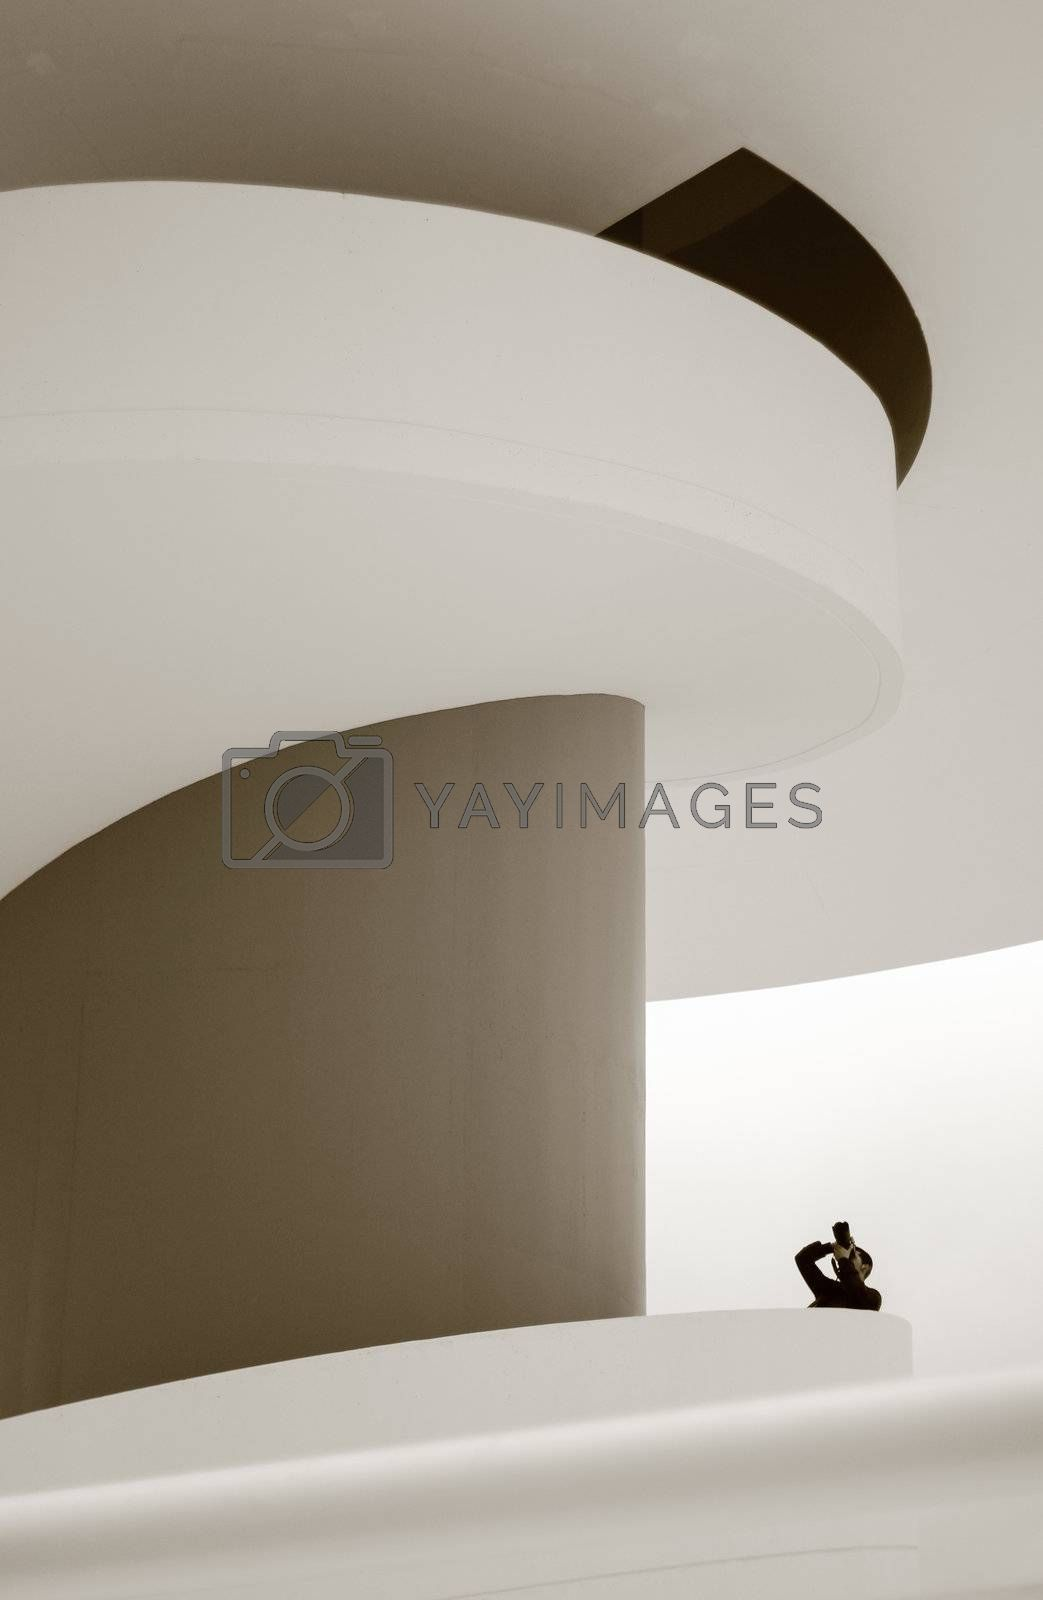 View of Niemeyer Center building, in Aviles, Spain, on April 10, 2011. The cultural center was designed by Brazilian architect Oscar Niemeyer, and was his only work in Spain